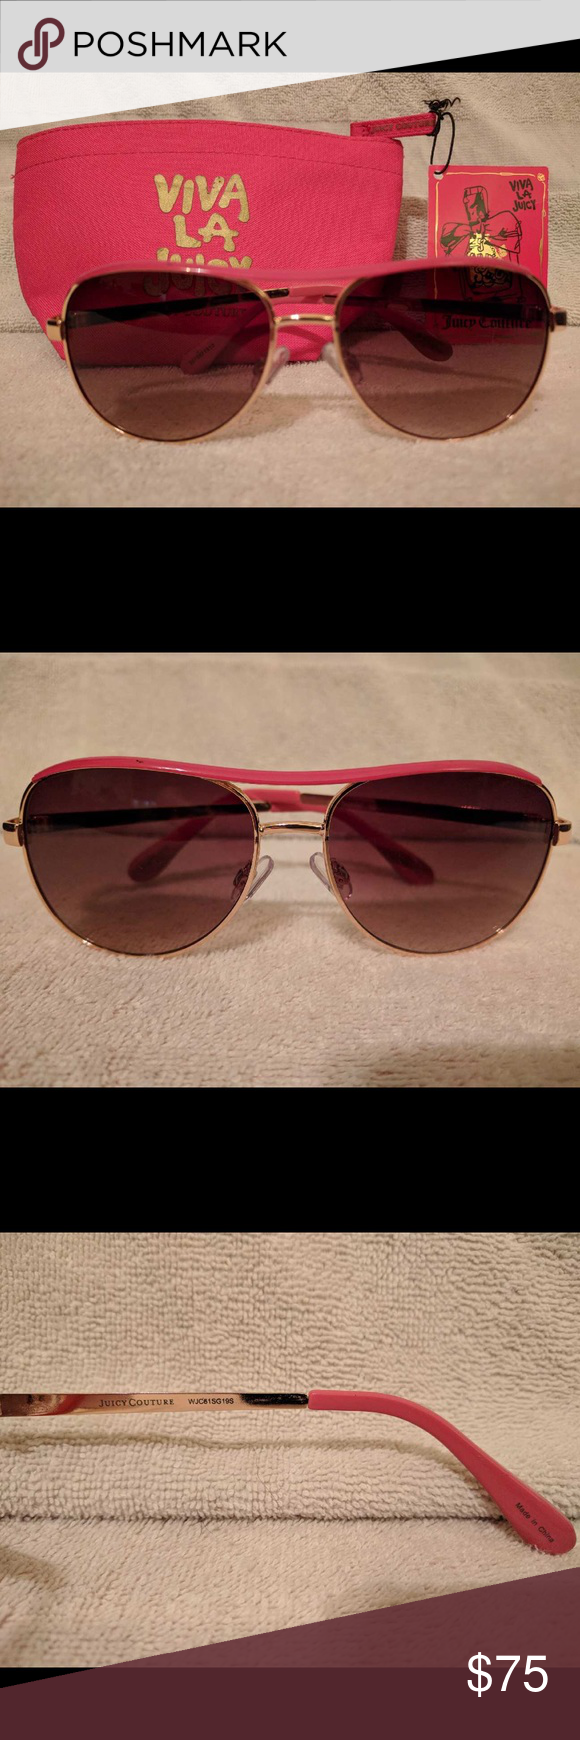 JUICY COUTURE Pink rimmed sunglasses w/NWT pouch JUICY COUTURE Pink Rimmed Sunglasses EUC Normal wear.  Bundled with JUICY COUTURE Pouch NWT included Juicy Couture Accessories Sunglasses #pinkrims JUICY COUTURE Pink rimmed sunglasses w/NWT pouch JUICY COUTURE Pink Rimmed Sunglasses EUC Normal wear.  Bundled with JUICY COUTURE Pouch NWT included Juicy Couture Accessories Sunglasses #pinkrims